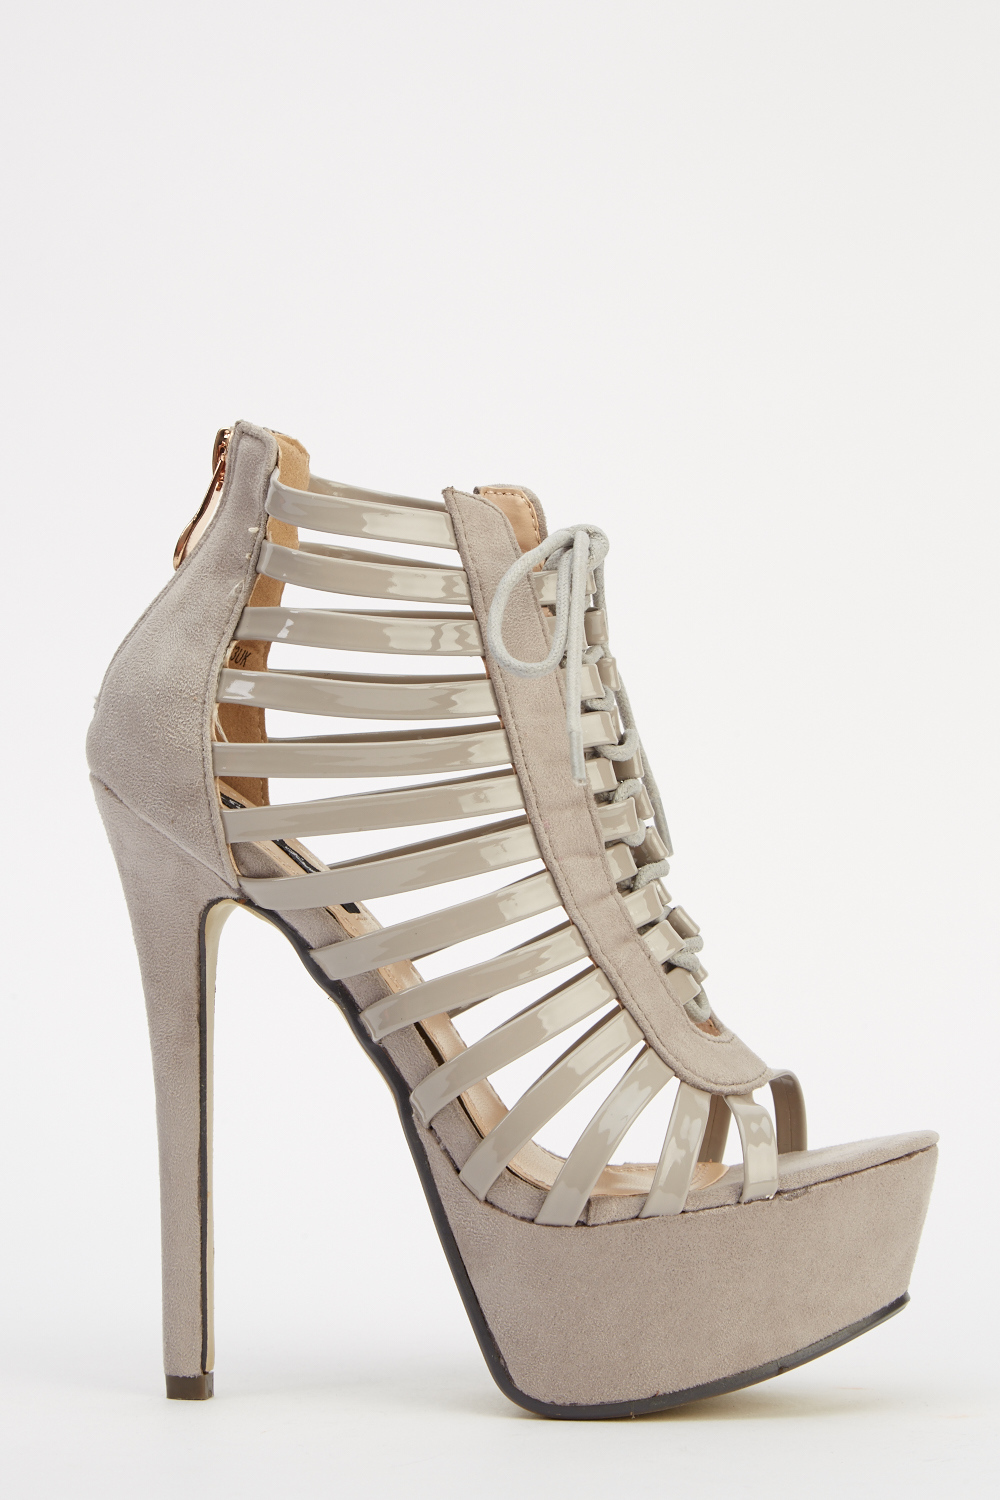 5909712ae22 Contrast Grey Strappy Platform Heels - Just £5